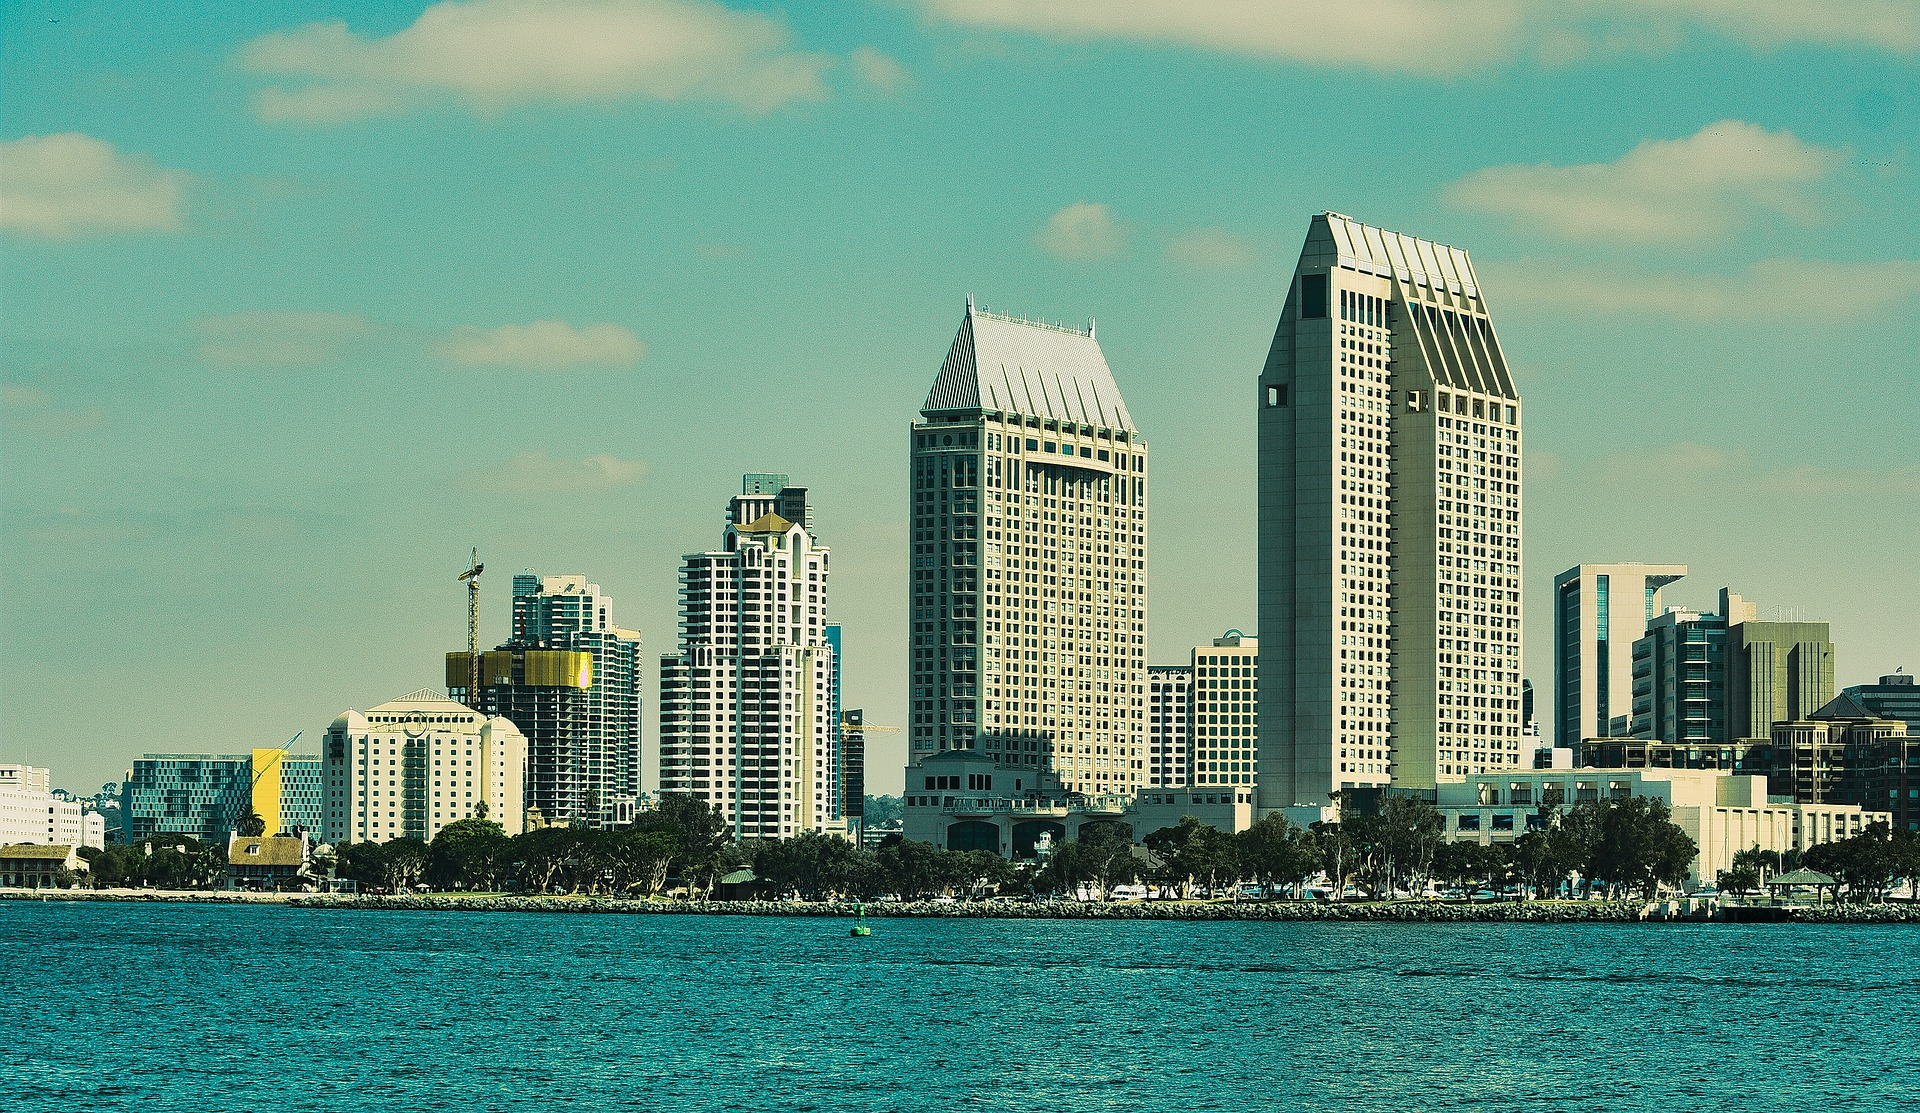 San Diego | DigiNo | 10 Best Locations For Digital Nomads